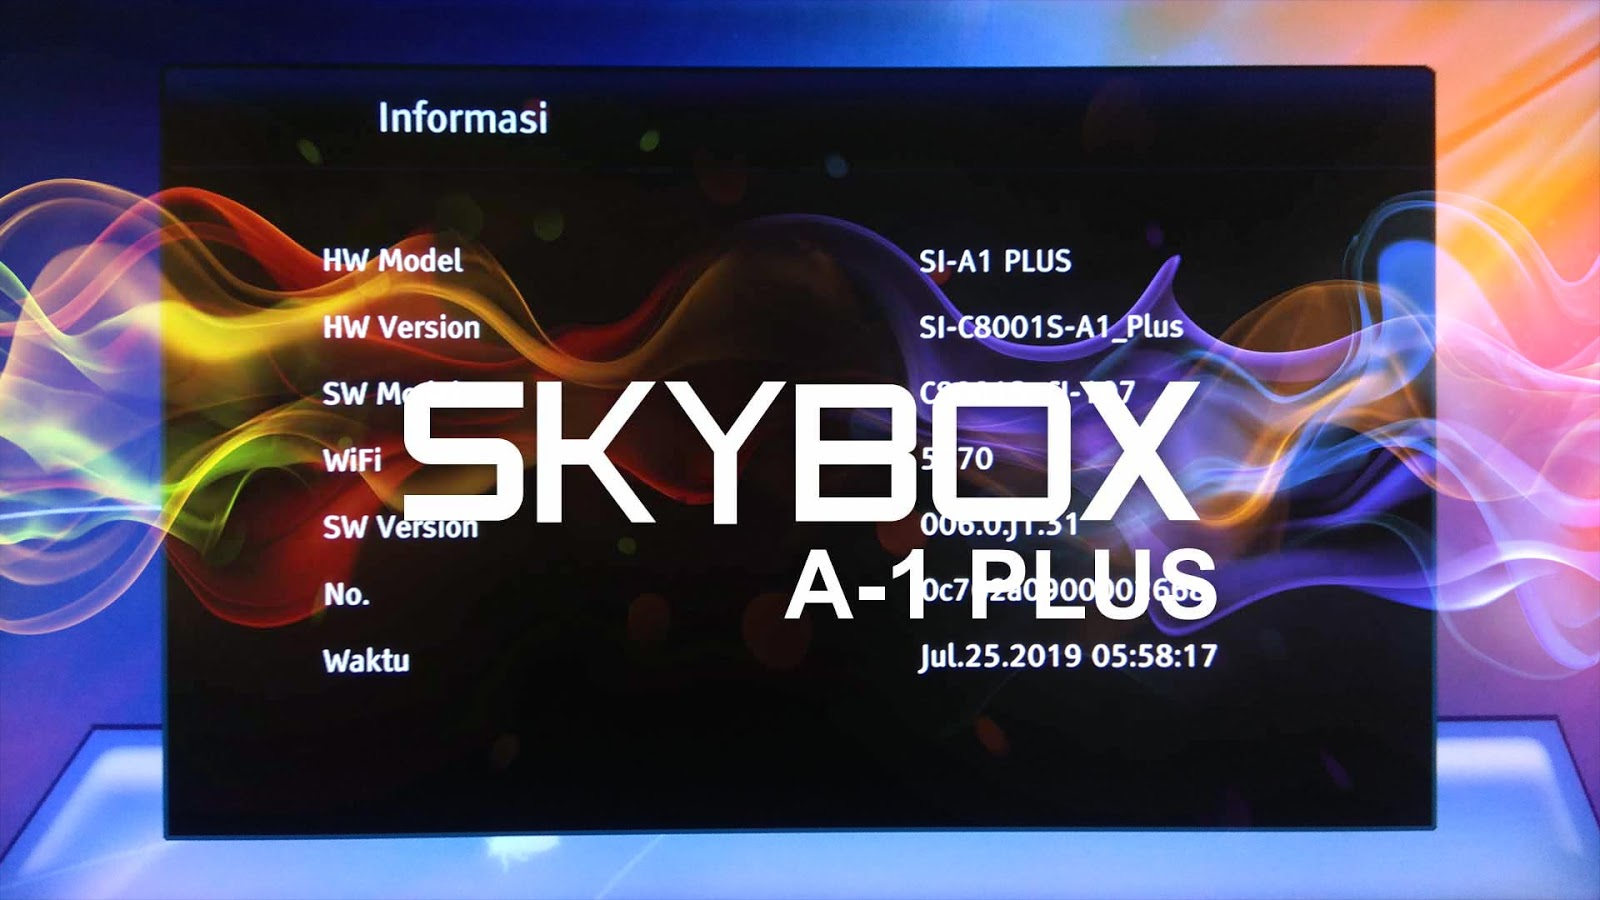 Download SW Skybox AVS 8MB untuk Skybox A1 Plus